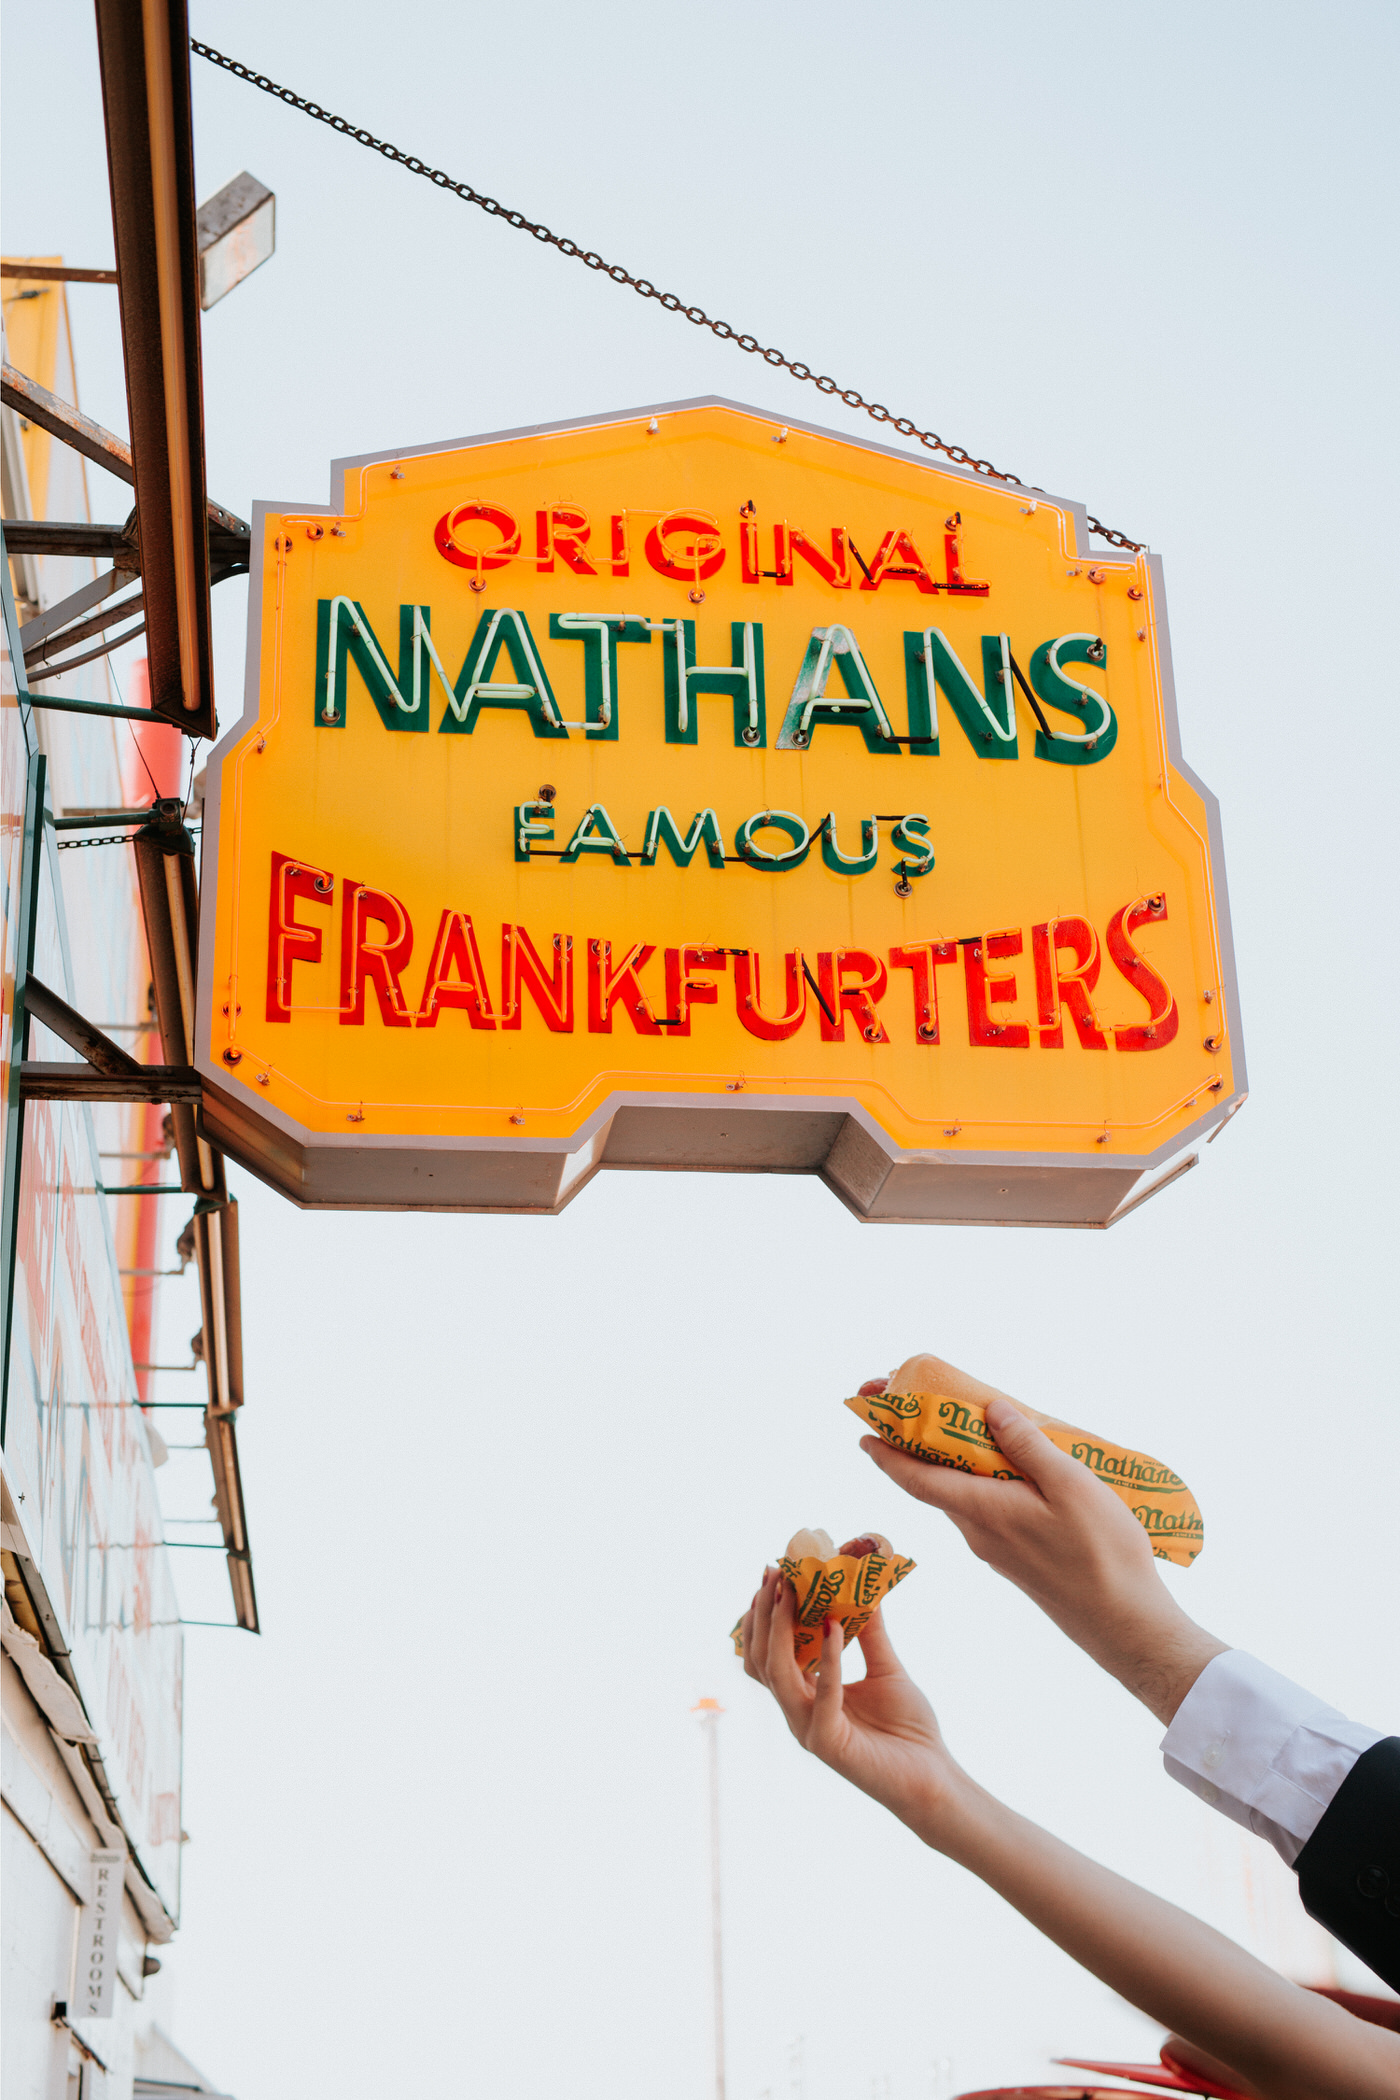 Nathan's Famous Hot Dogs Coney Island